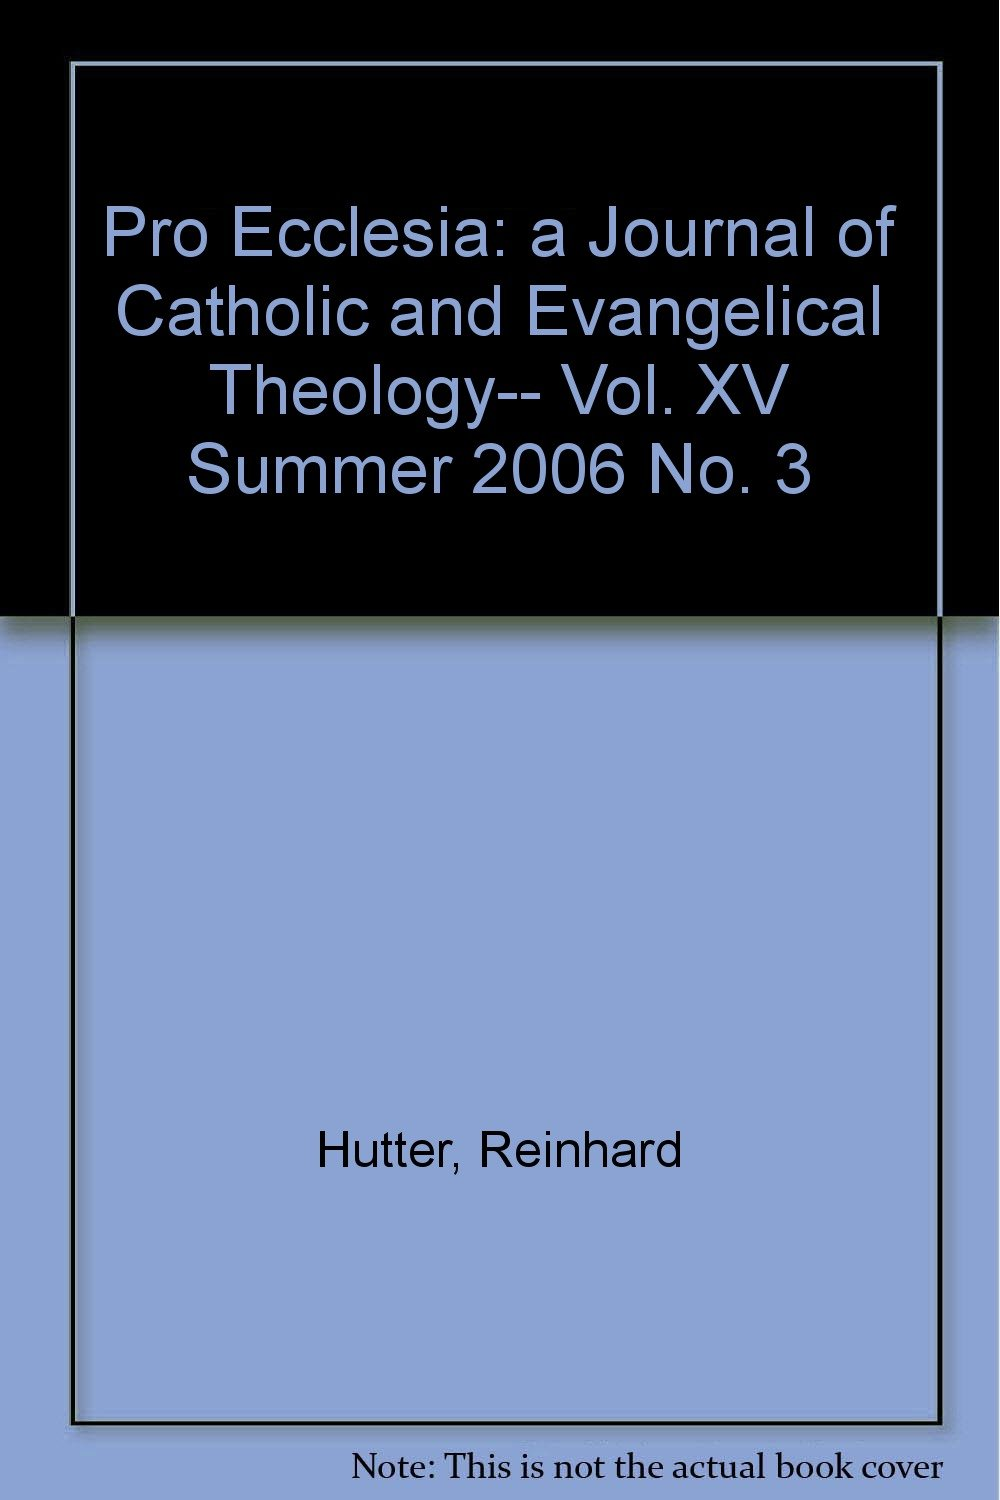 Download Pro Ecclesia: a Journal of Catholic and Evangelical Theology-- Vol. XV Summer 2006 No. 3 pdf